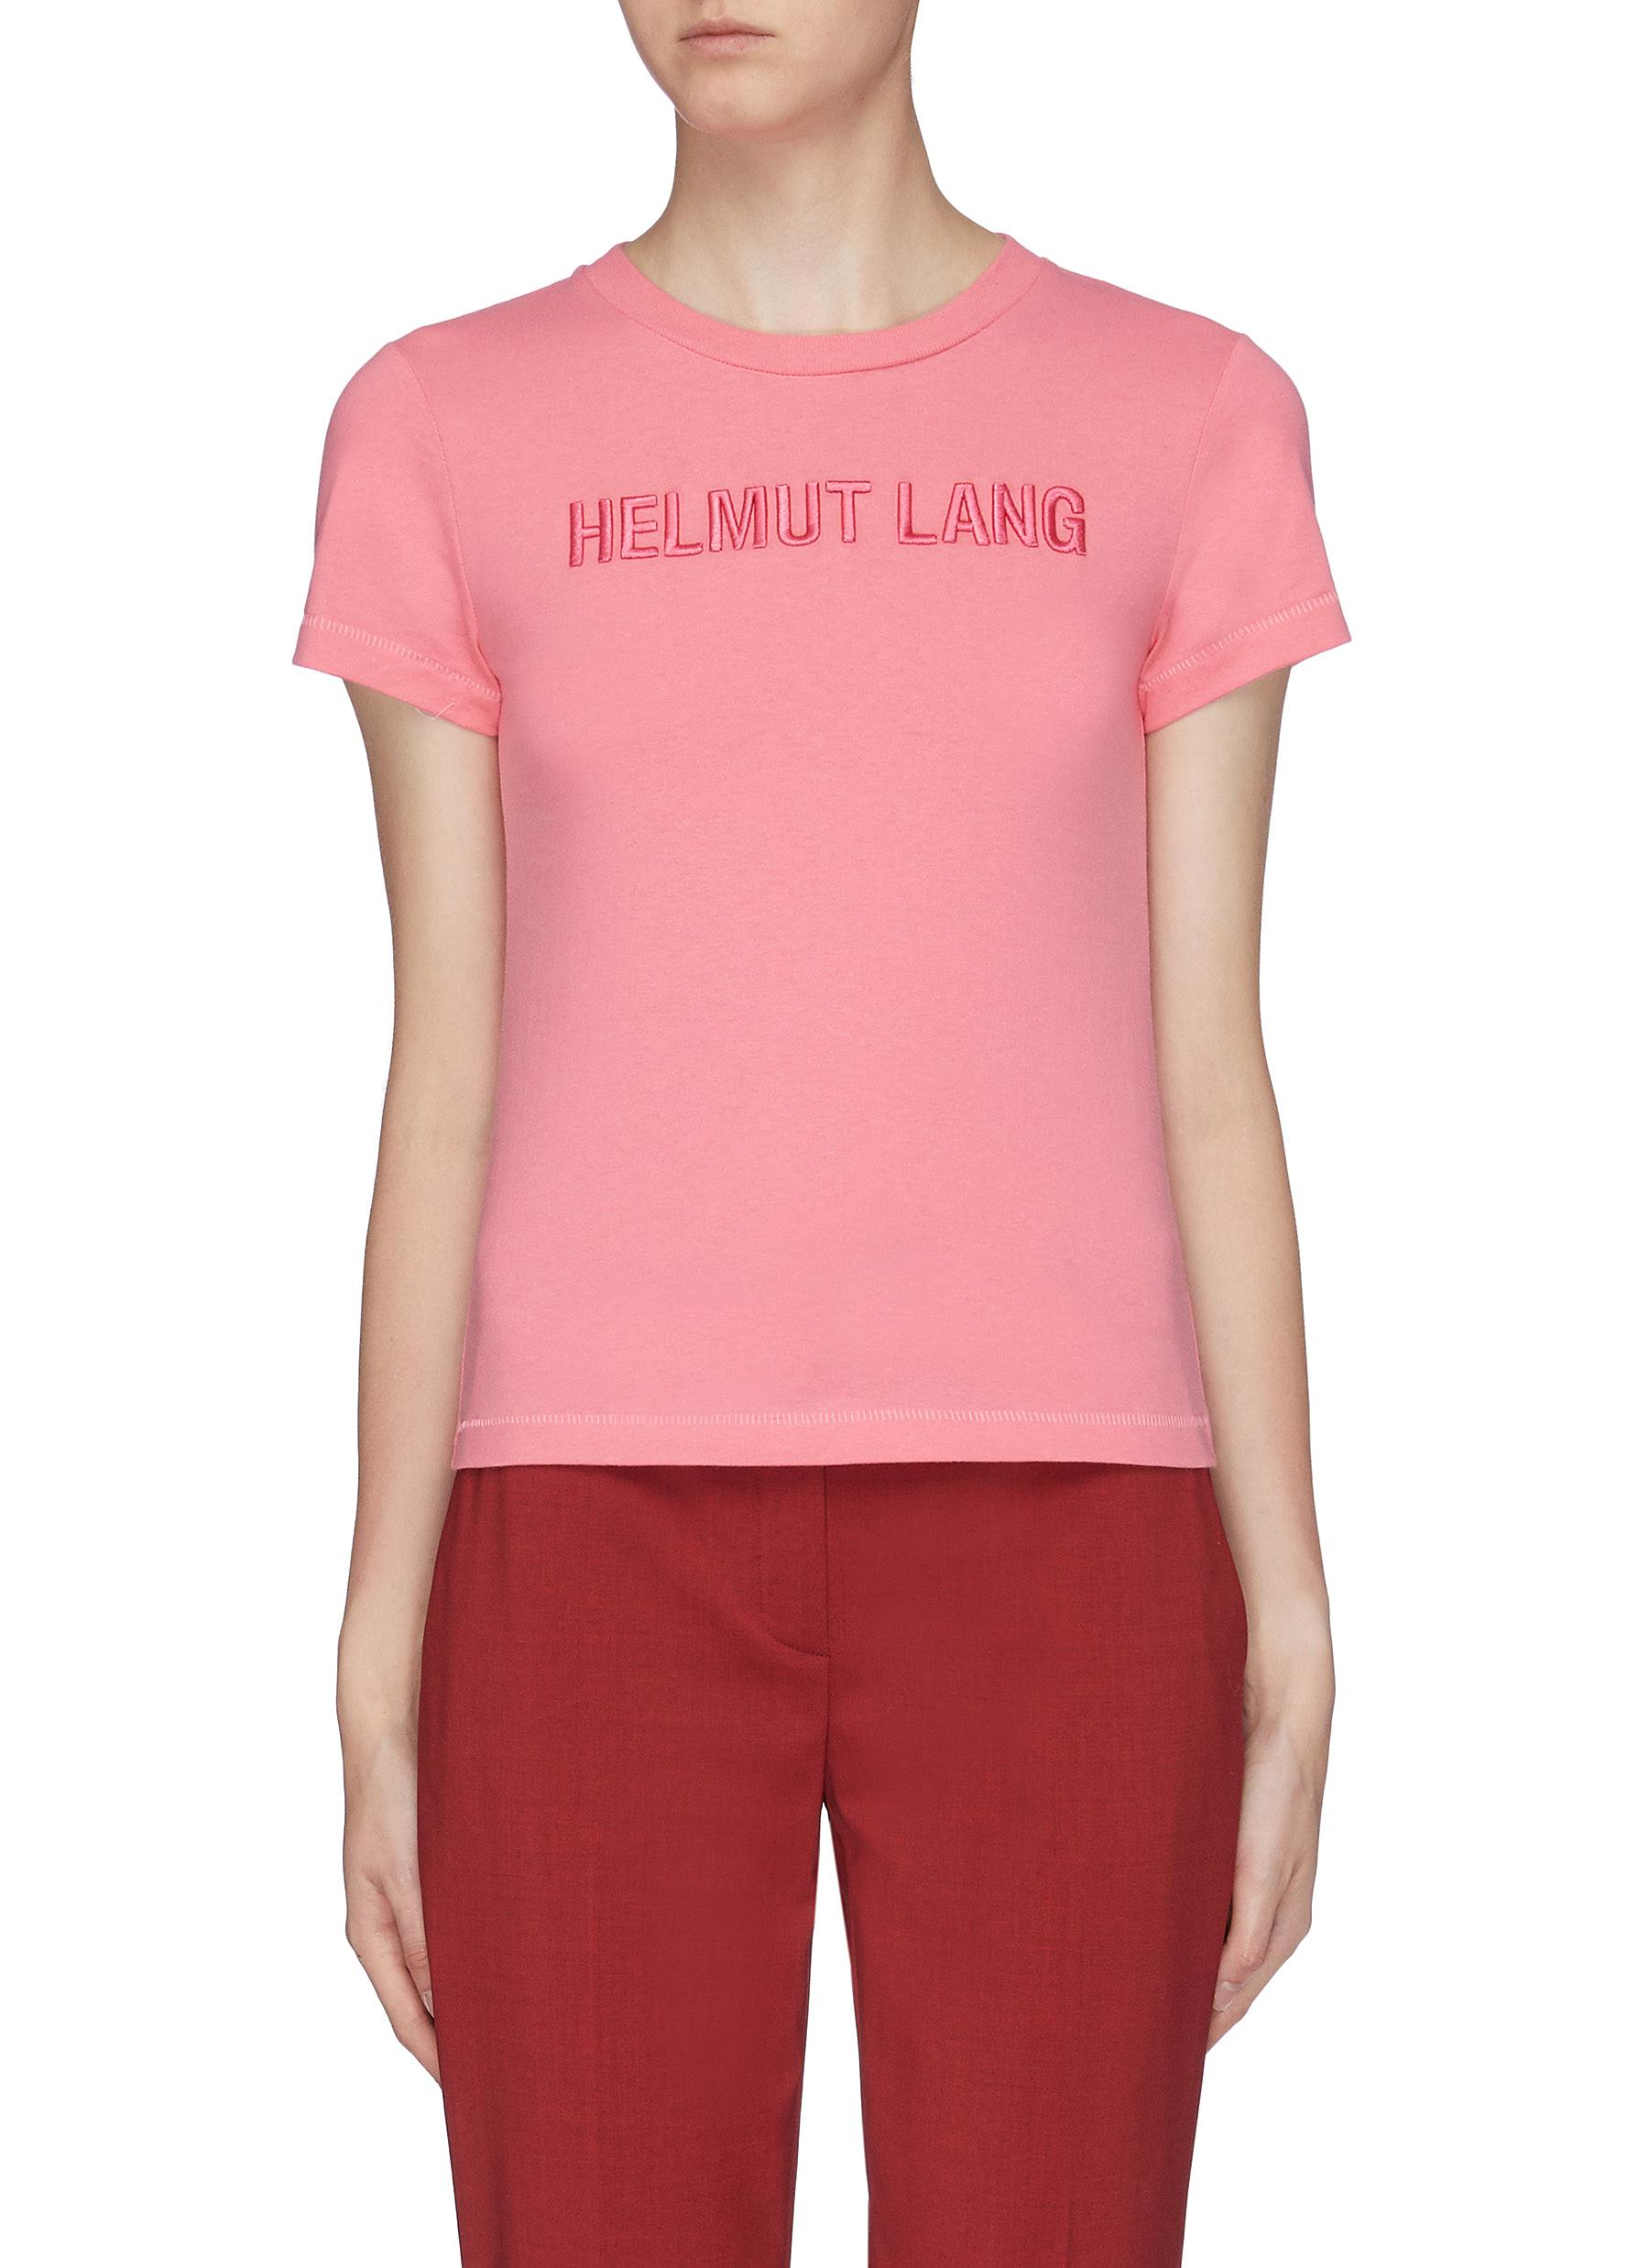 Standard Baby logo embroidered T-shirt by Helmut Lang